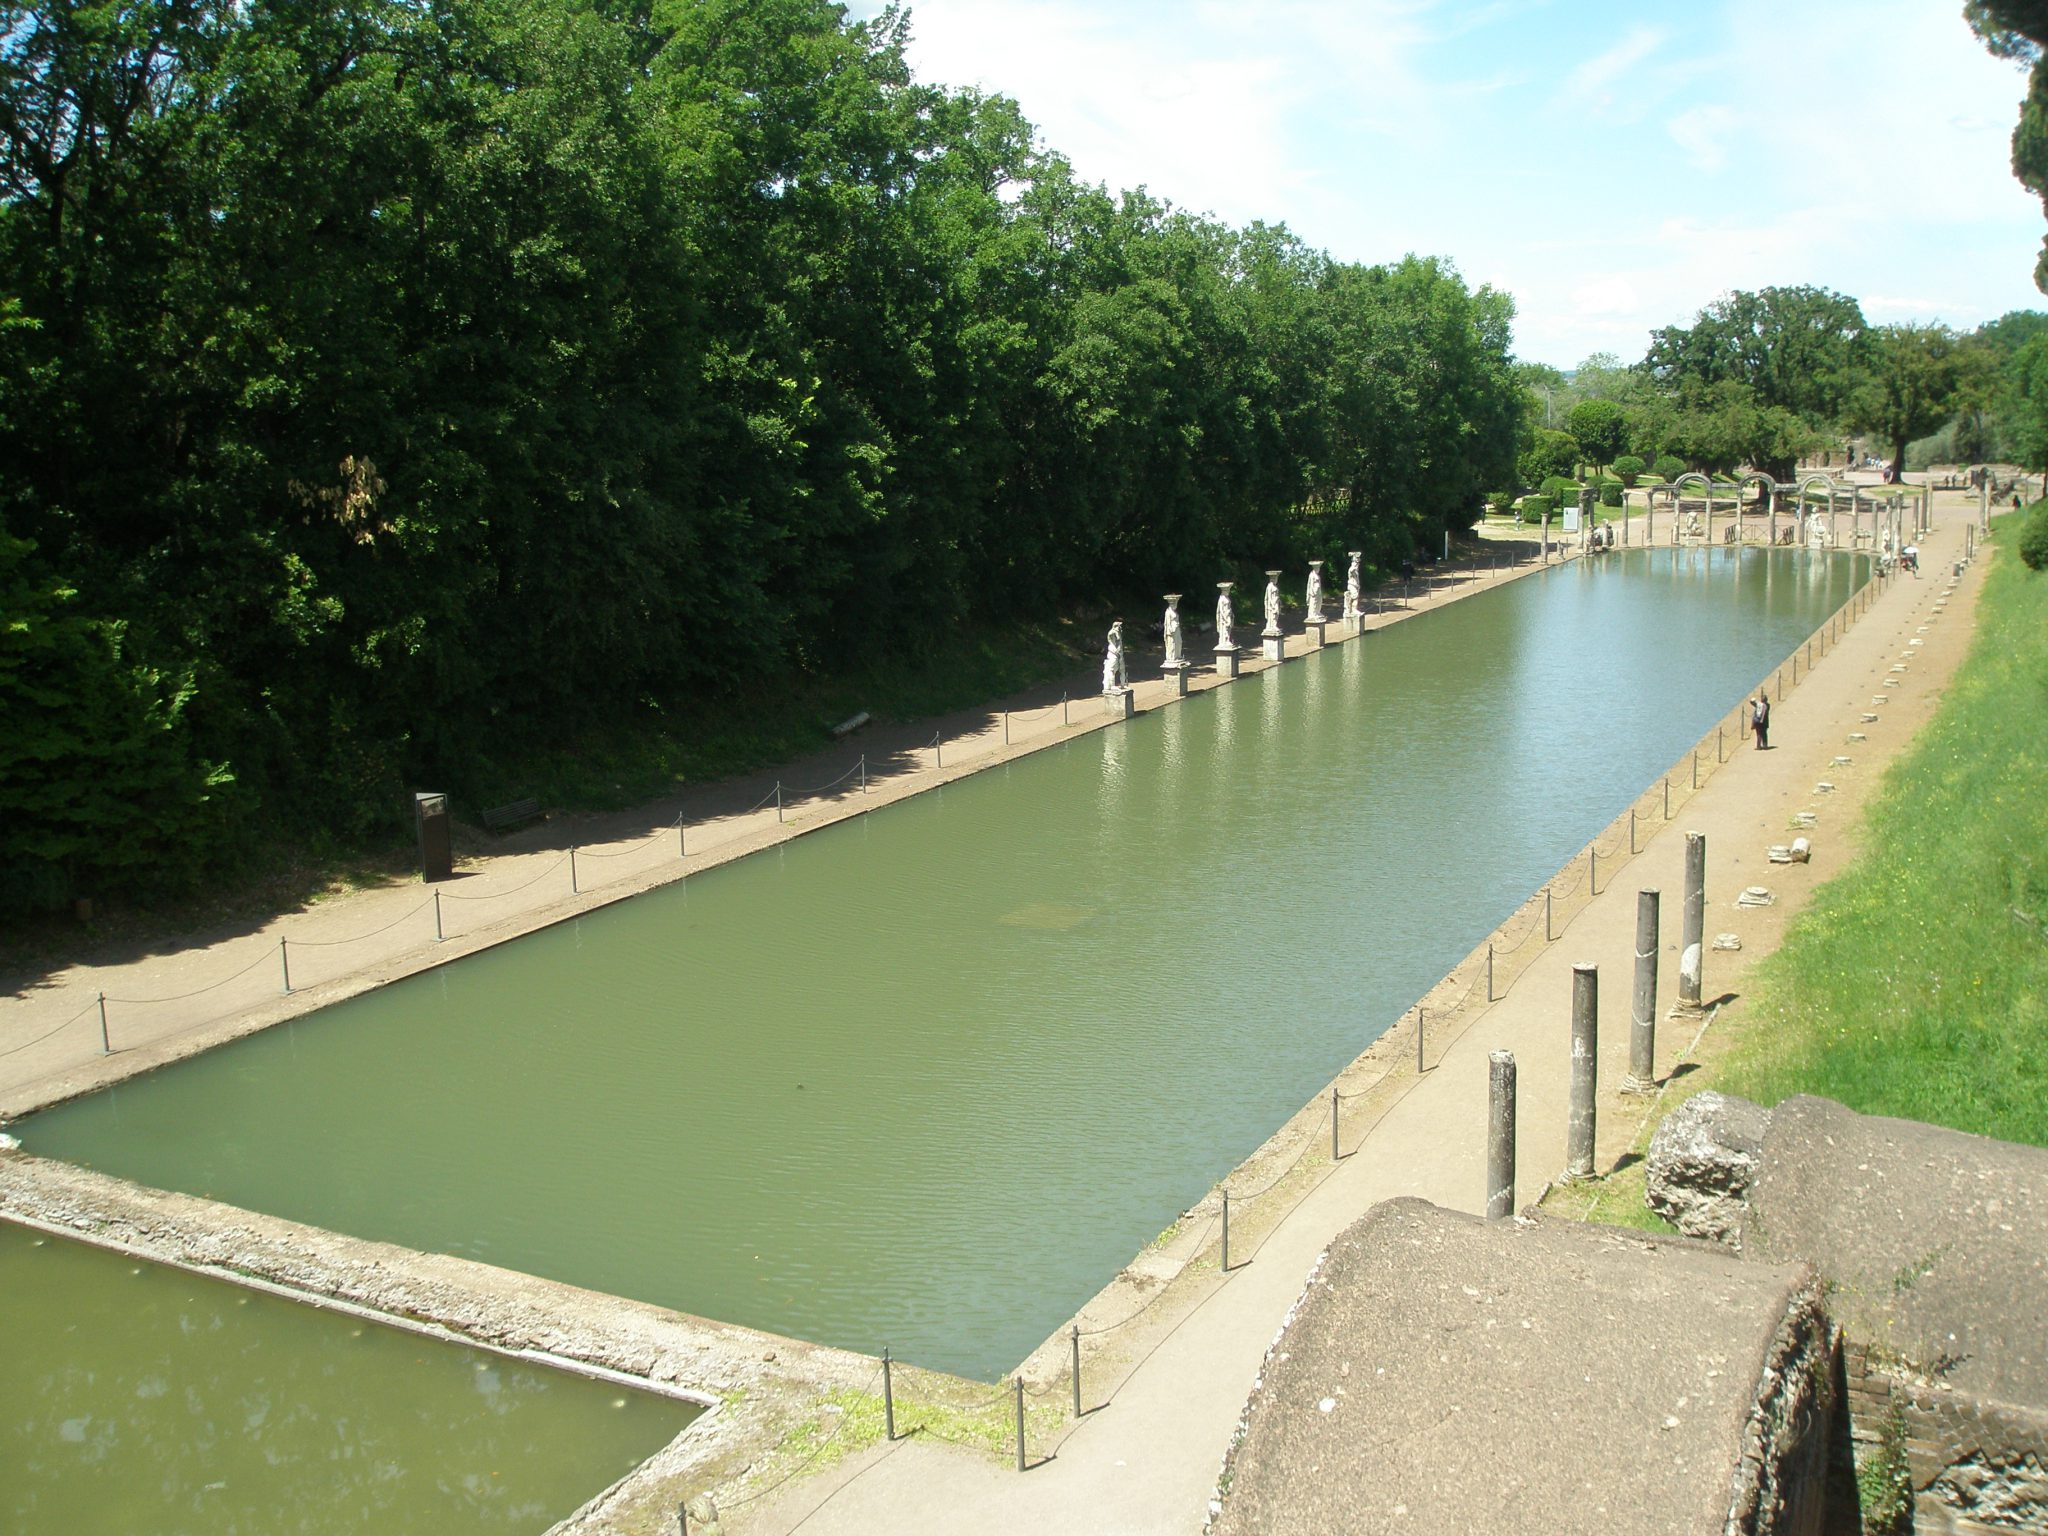 Emperor Hadrian's Canopus Pool, in Tivoli, as I visited it on yet another of Italy's scorchingly-hot days: on May 17, 2014.